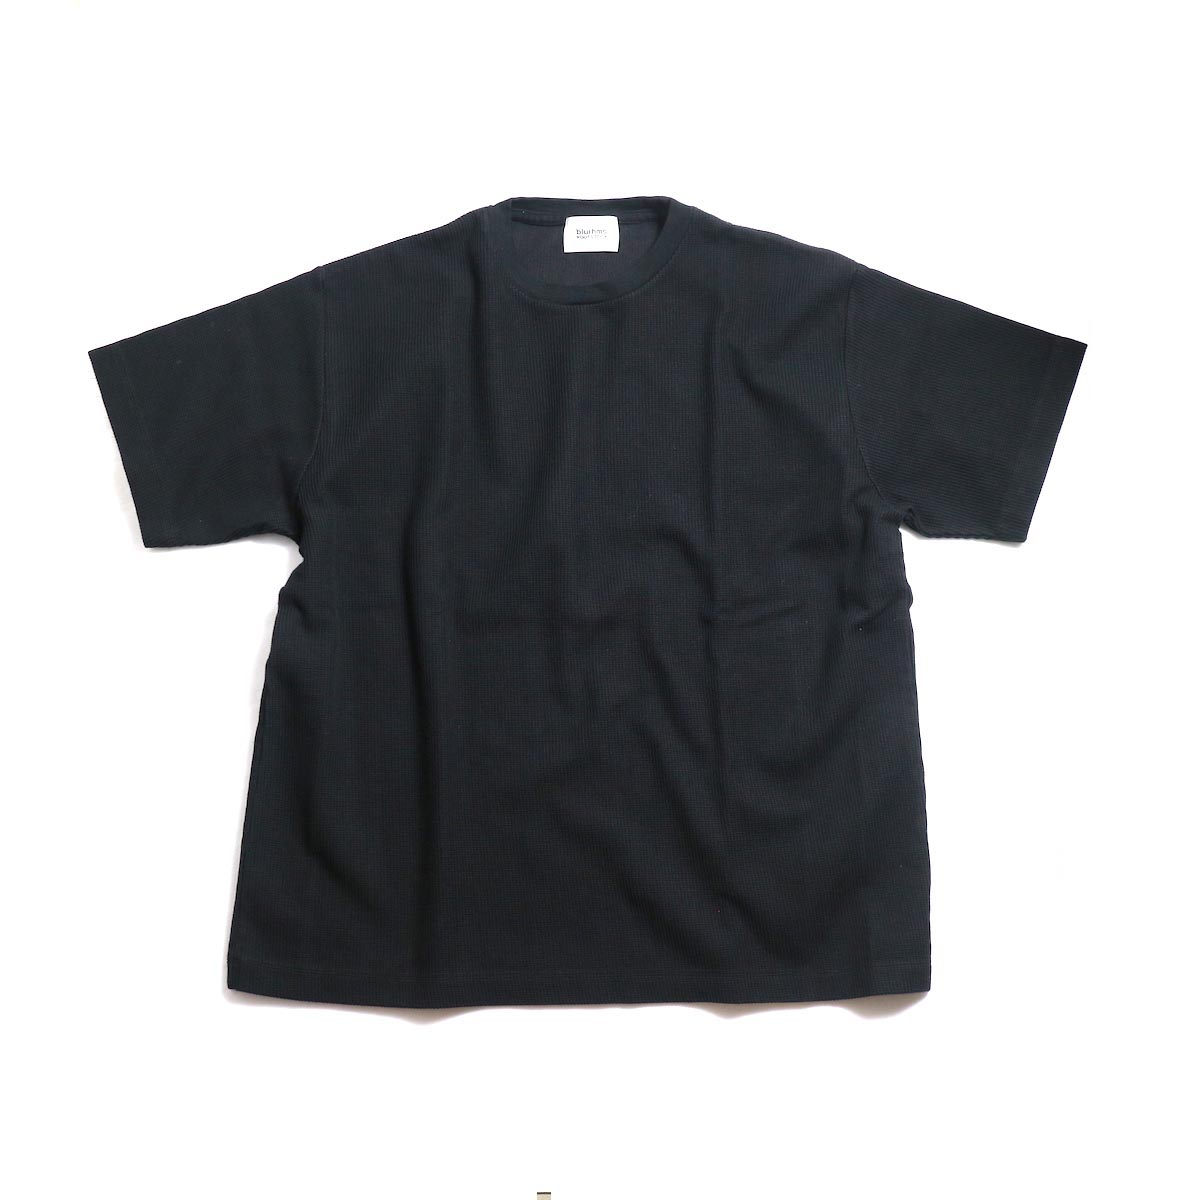 blurhms / New Rough & Smooth Thermal Box Tee -Black